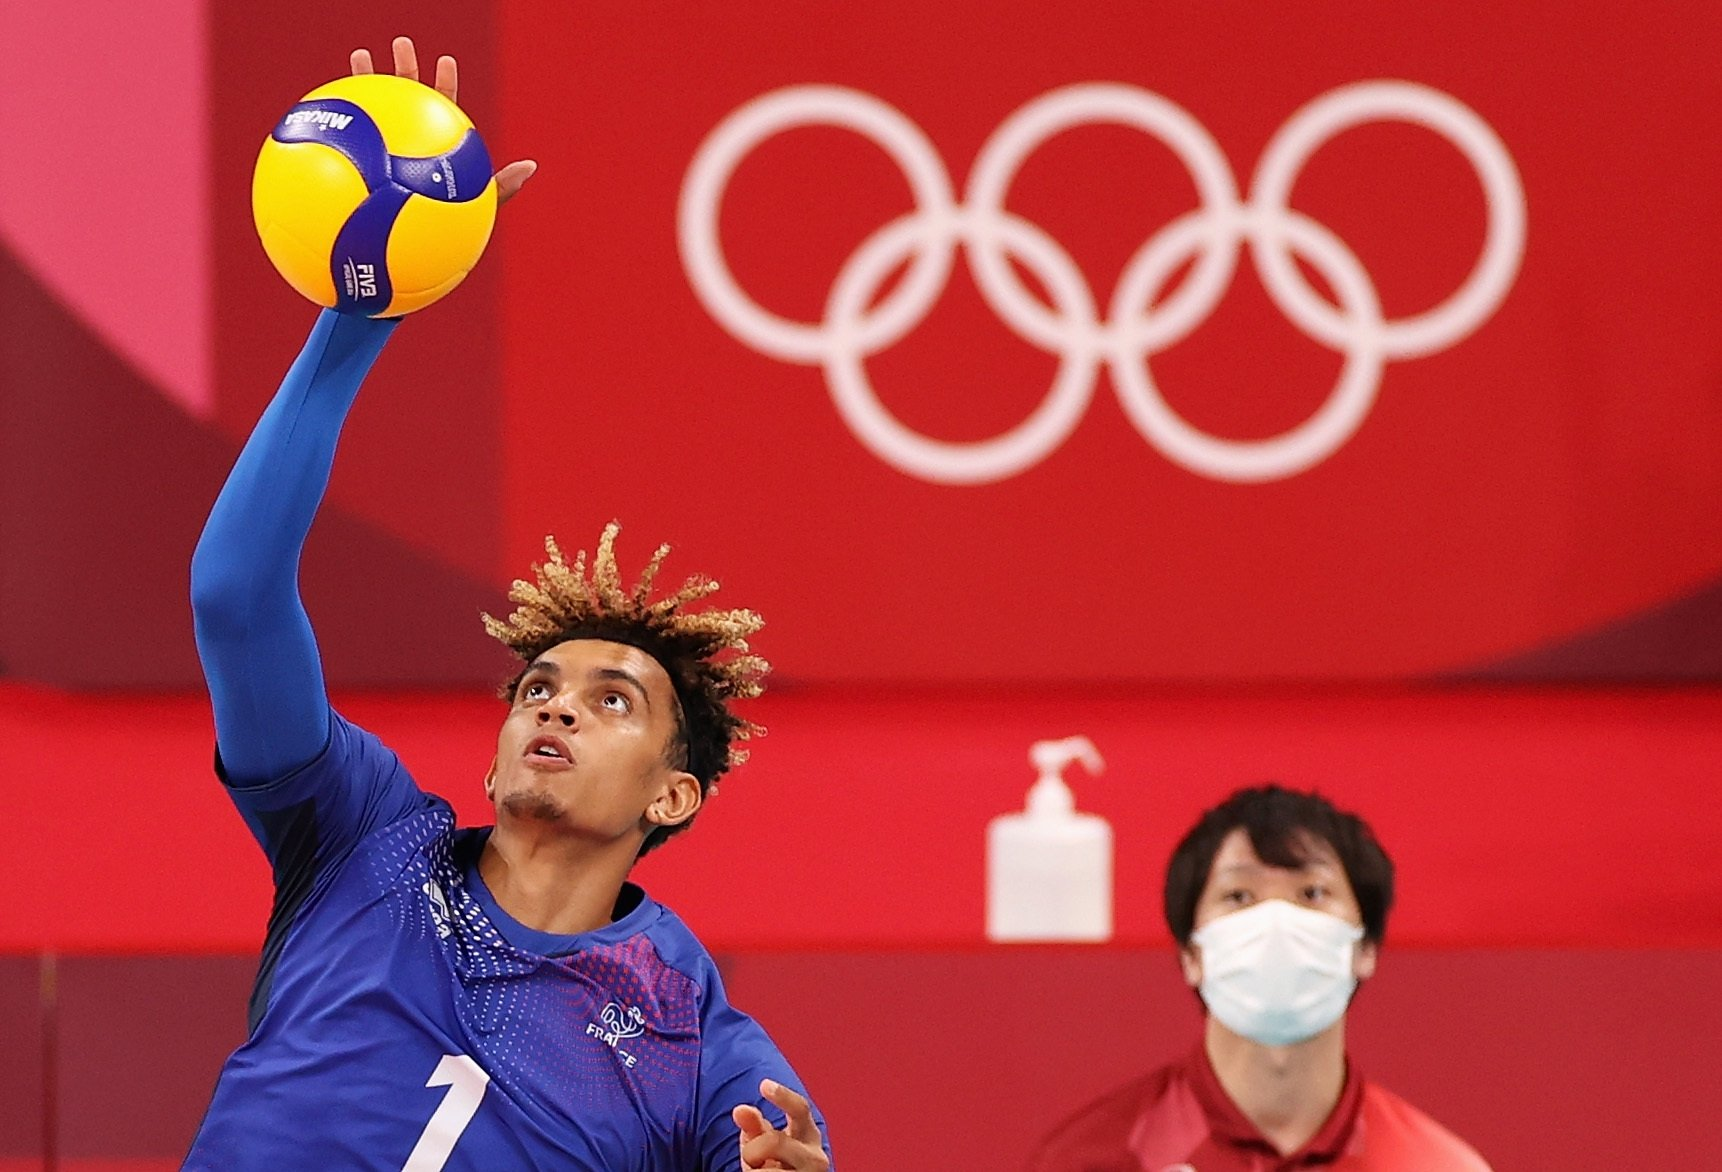 Barthelemy Chinenyeze #1 of Team France serves against Team Argentina during the Men's Volleyball Semifinals on day thirteen of the Tokyo 2020 Olympic Games at Ariake Arena, Aug. 5, 2021 in Tokyo, Japan. (Getty Images Photo)